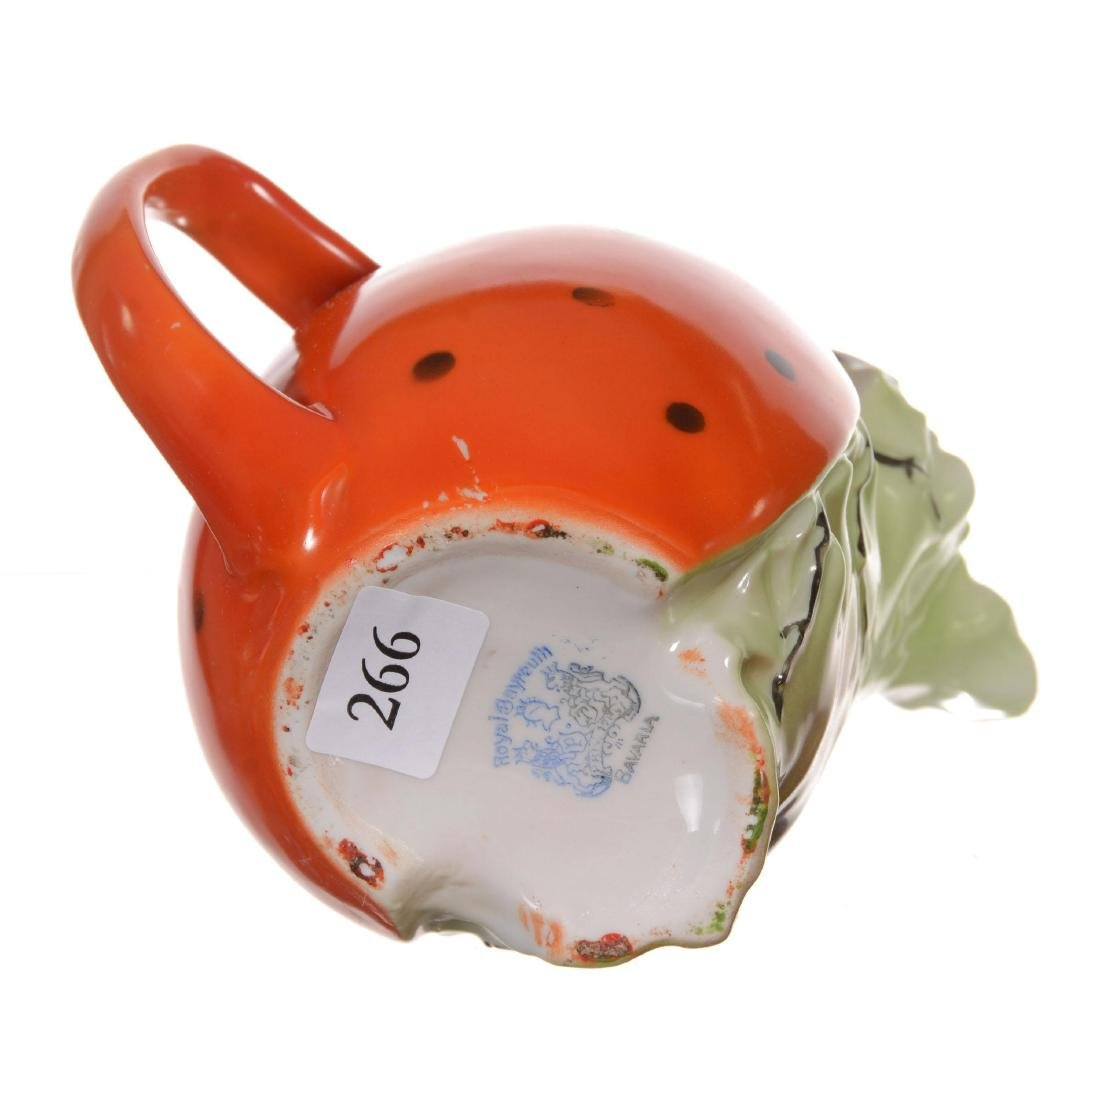 Royal Bayreuth Ladybug Milk Pitcher - 3